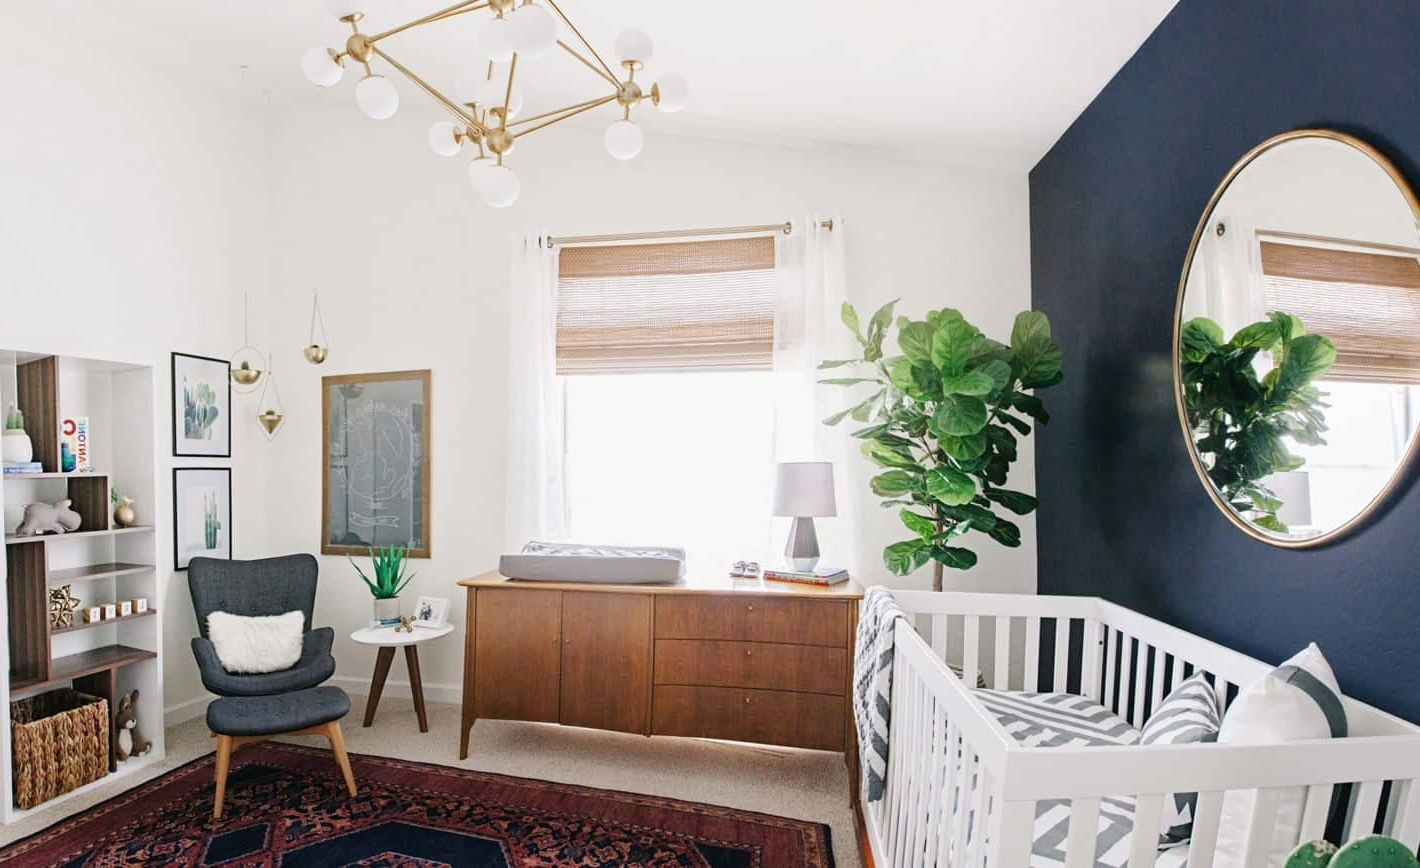 Best And Newest Baby Nursery Decorated With Wall Mirror And Houseplant – Cute With Cute Wall Mirrors (View 13 of 20)